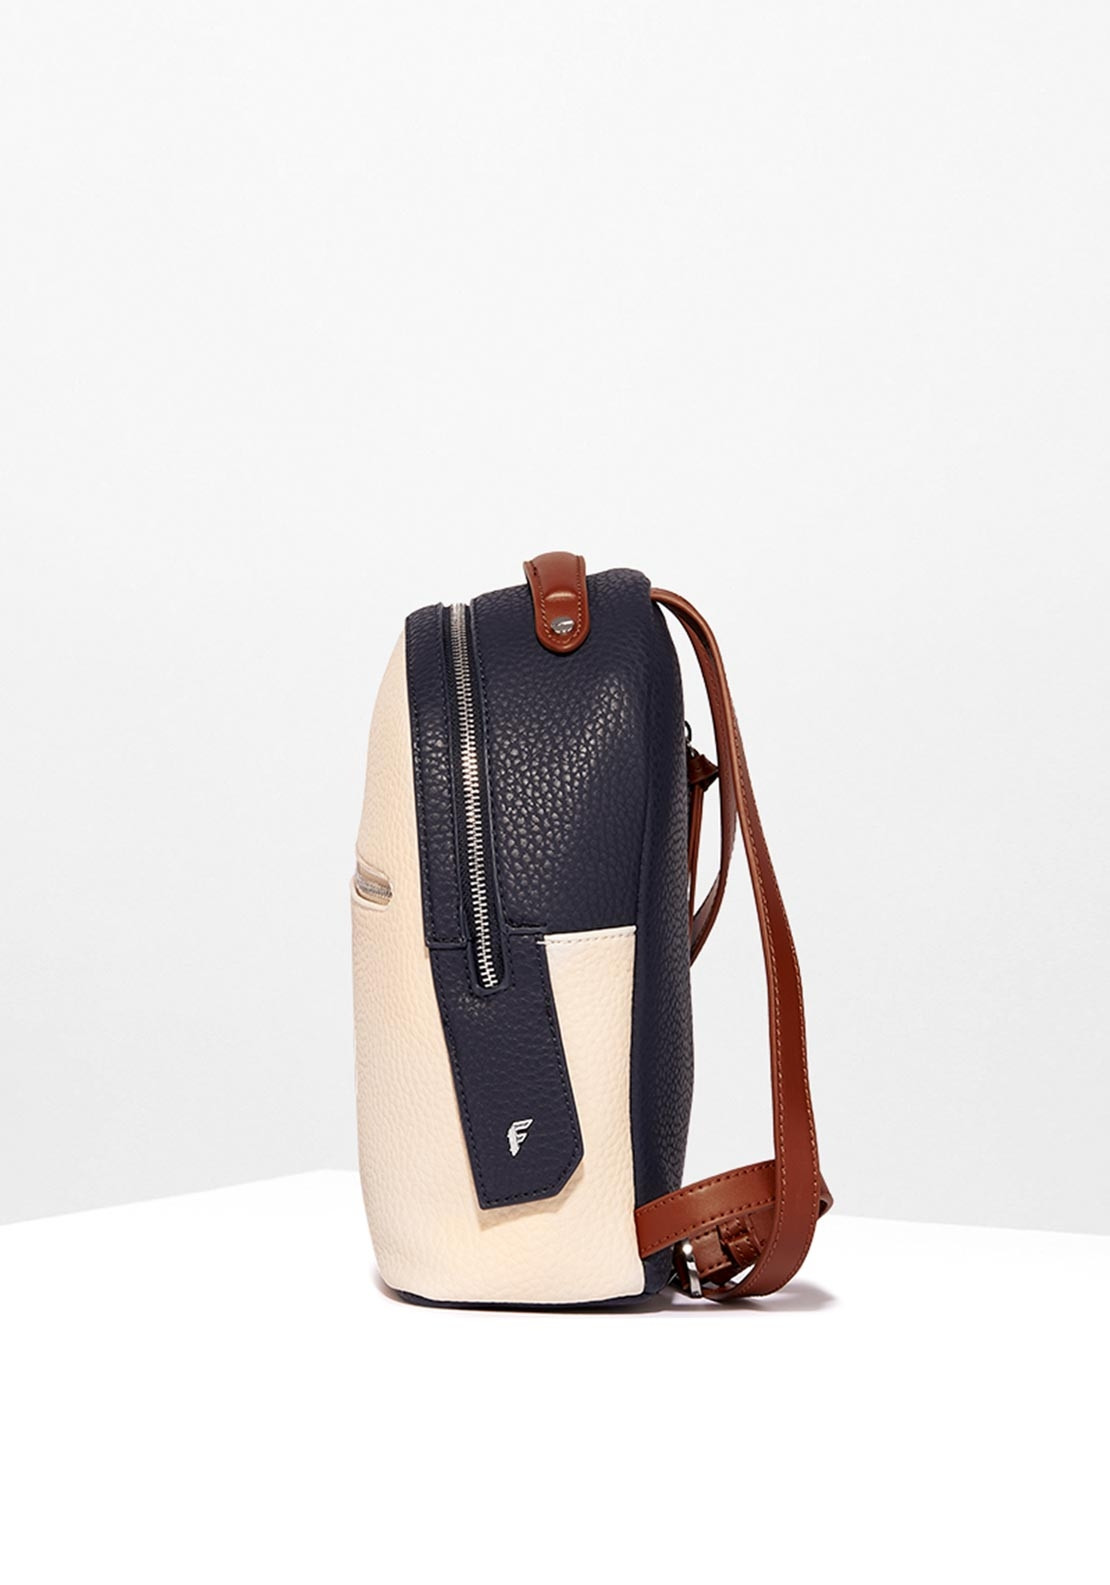 unique style attractive price clearance sale Fiorelli Anouk Small Backpack, Nautical